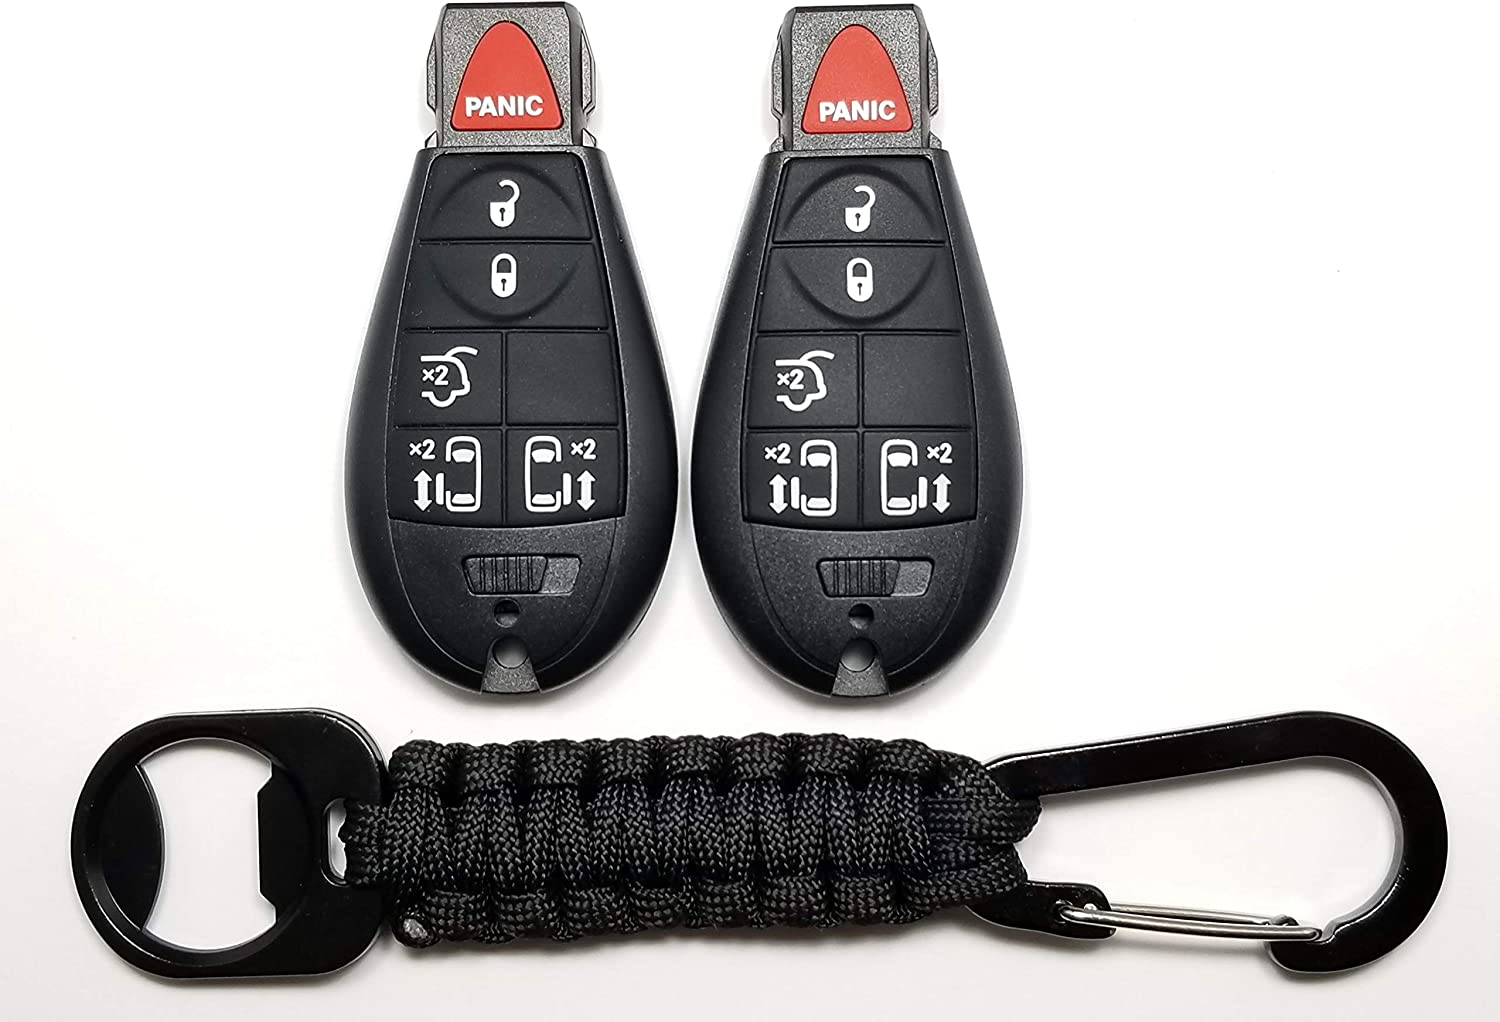 JalopyTrade 6 Button Key Remote Control Replacement Fob Transmitter Fits for 2008-2010 Dodge Ram 2008-2013 Jeep Grand Cheroke